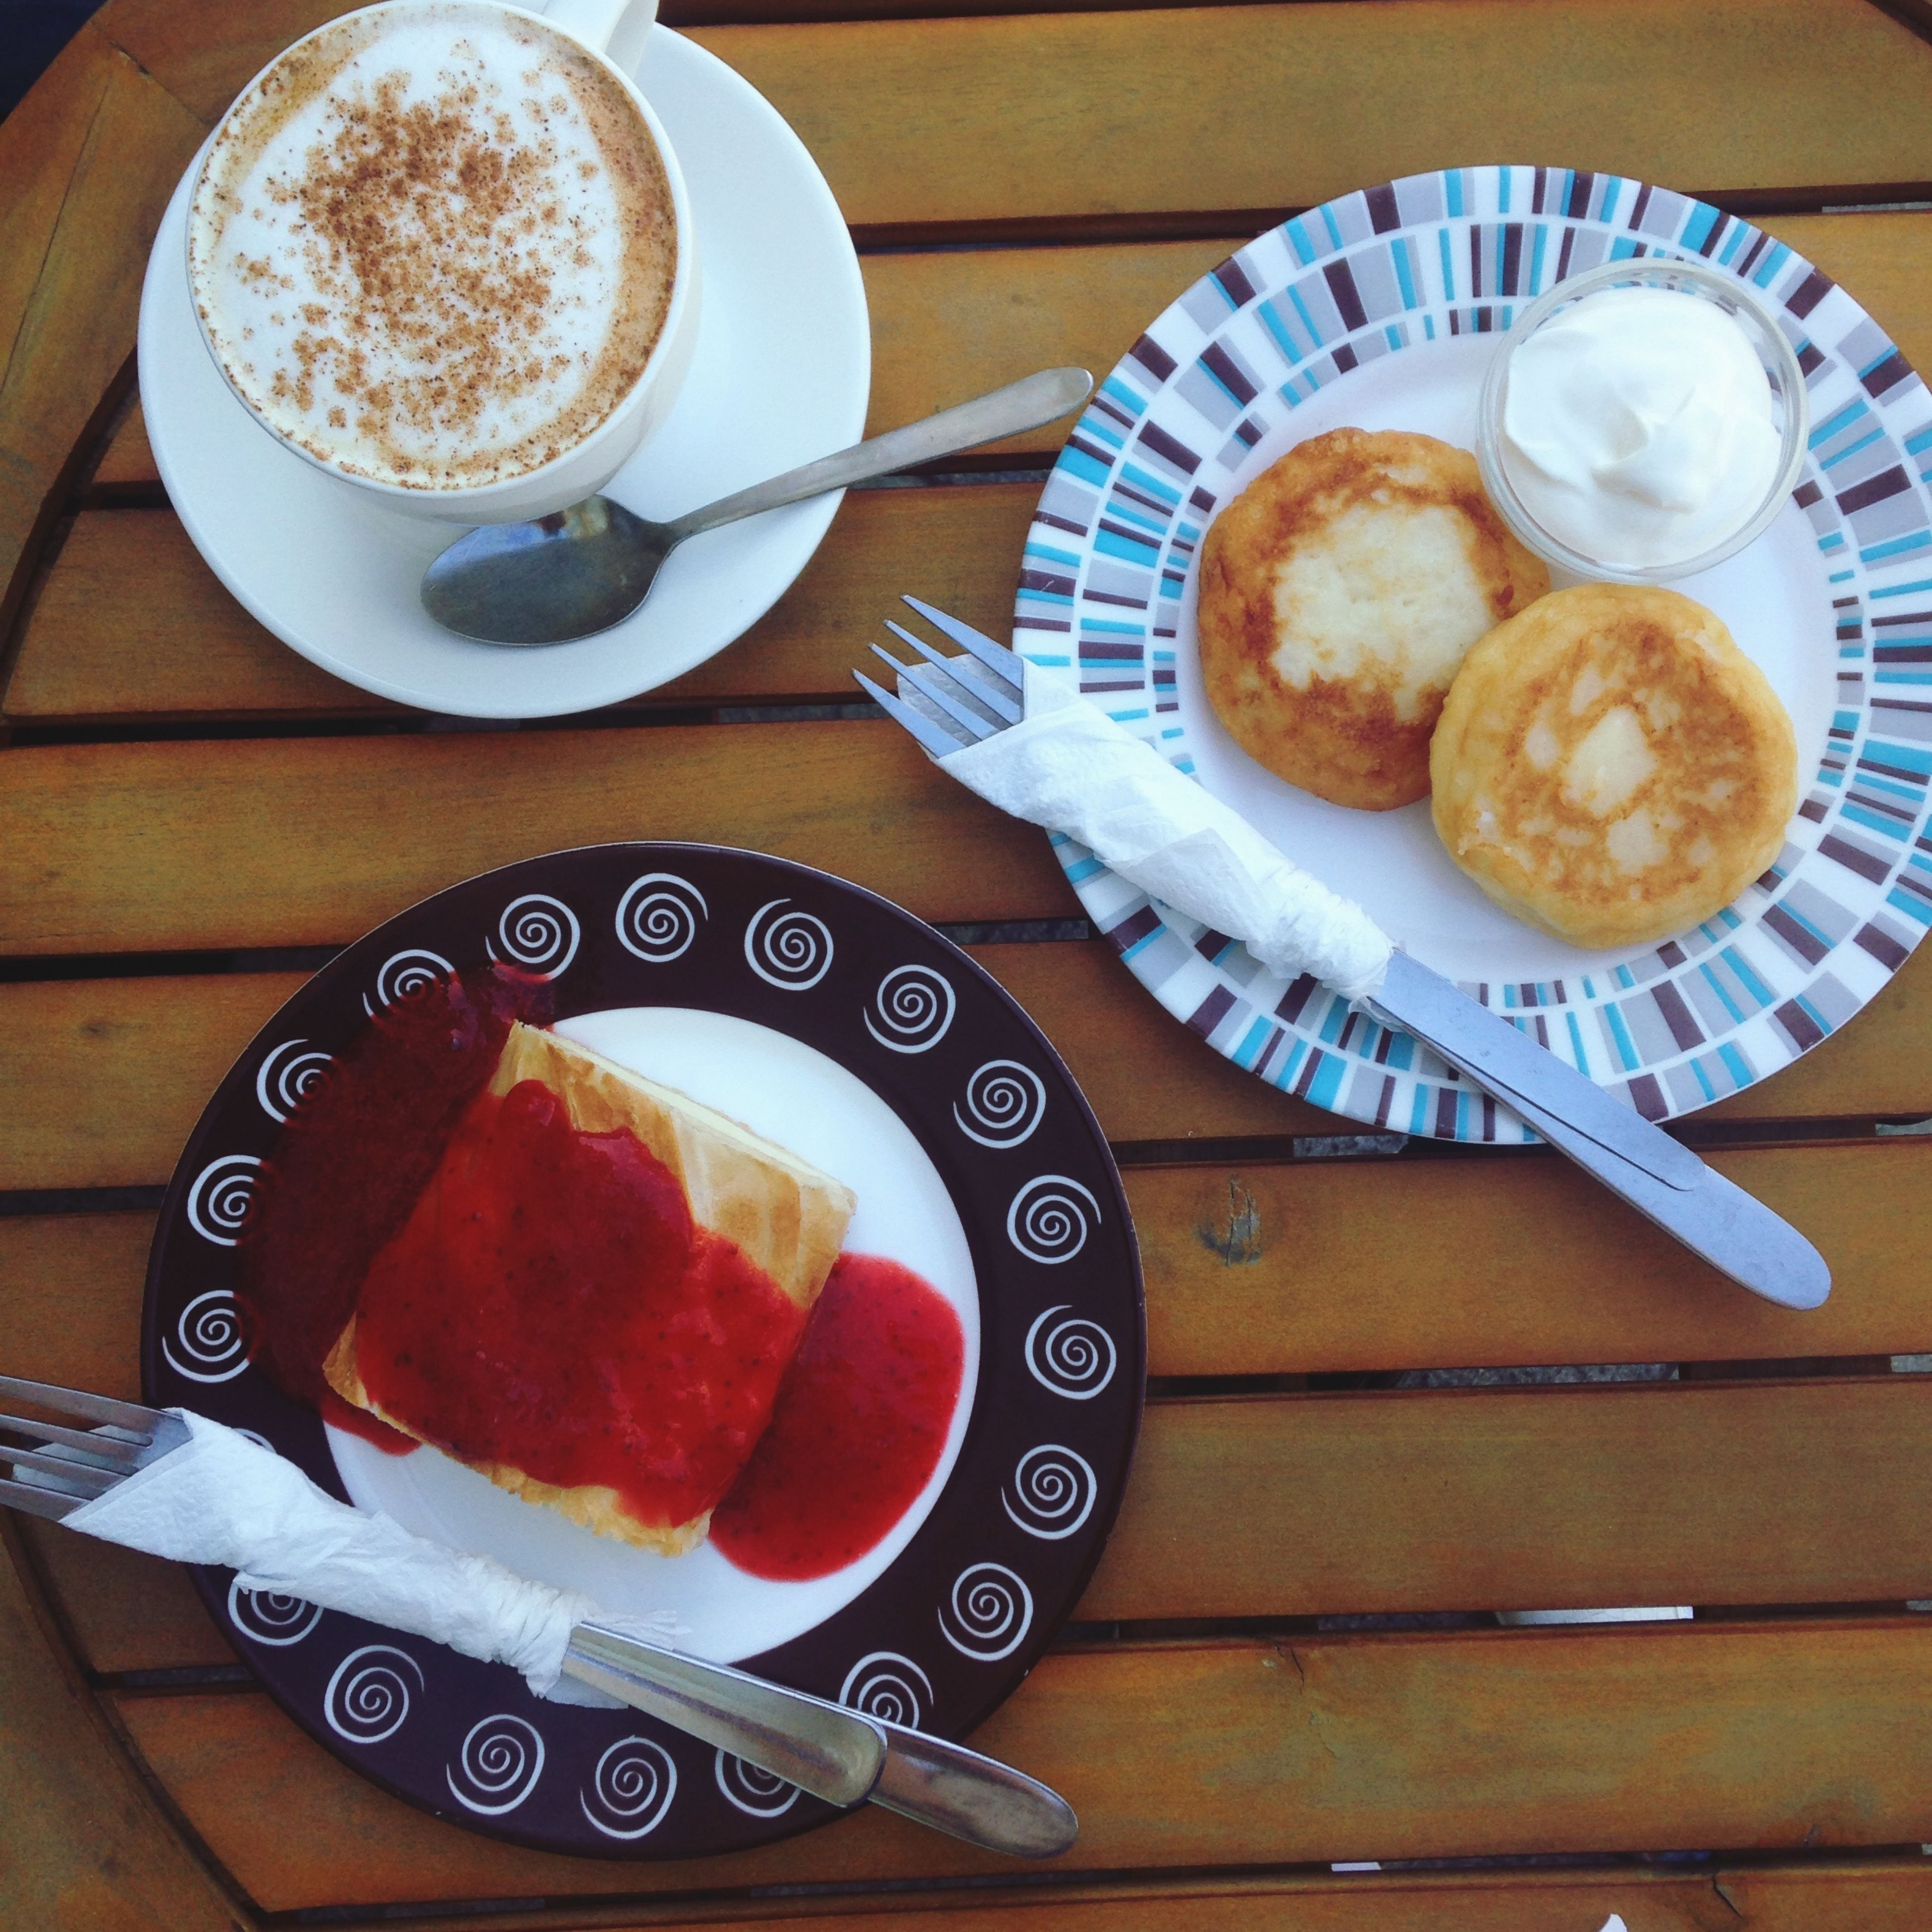 food and drink, freshness, drink, coffee cup, indoors, table, food, coffee - drink, refreshment, still life, breakfast, plate, ready-to-eat, saucer, sweet food, high angle view, bread, coffee, frothy drink, healthy eating